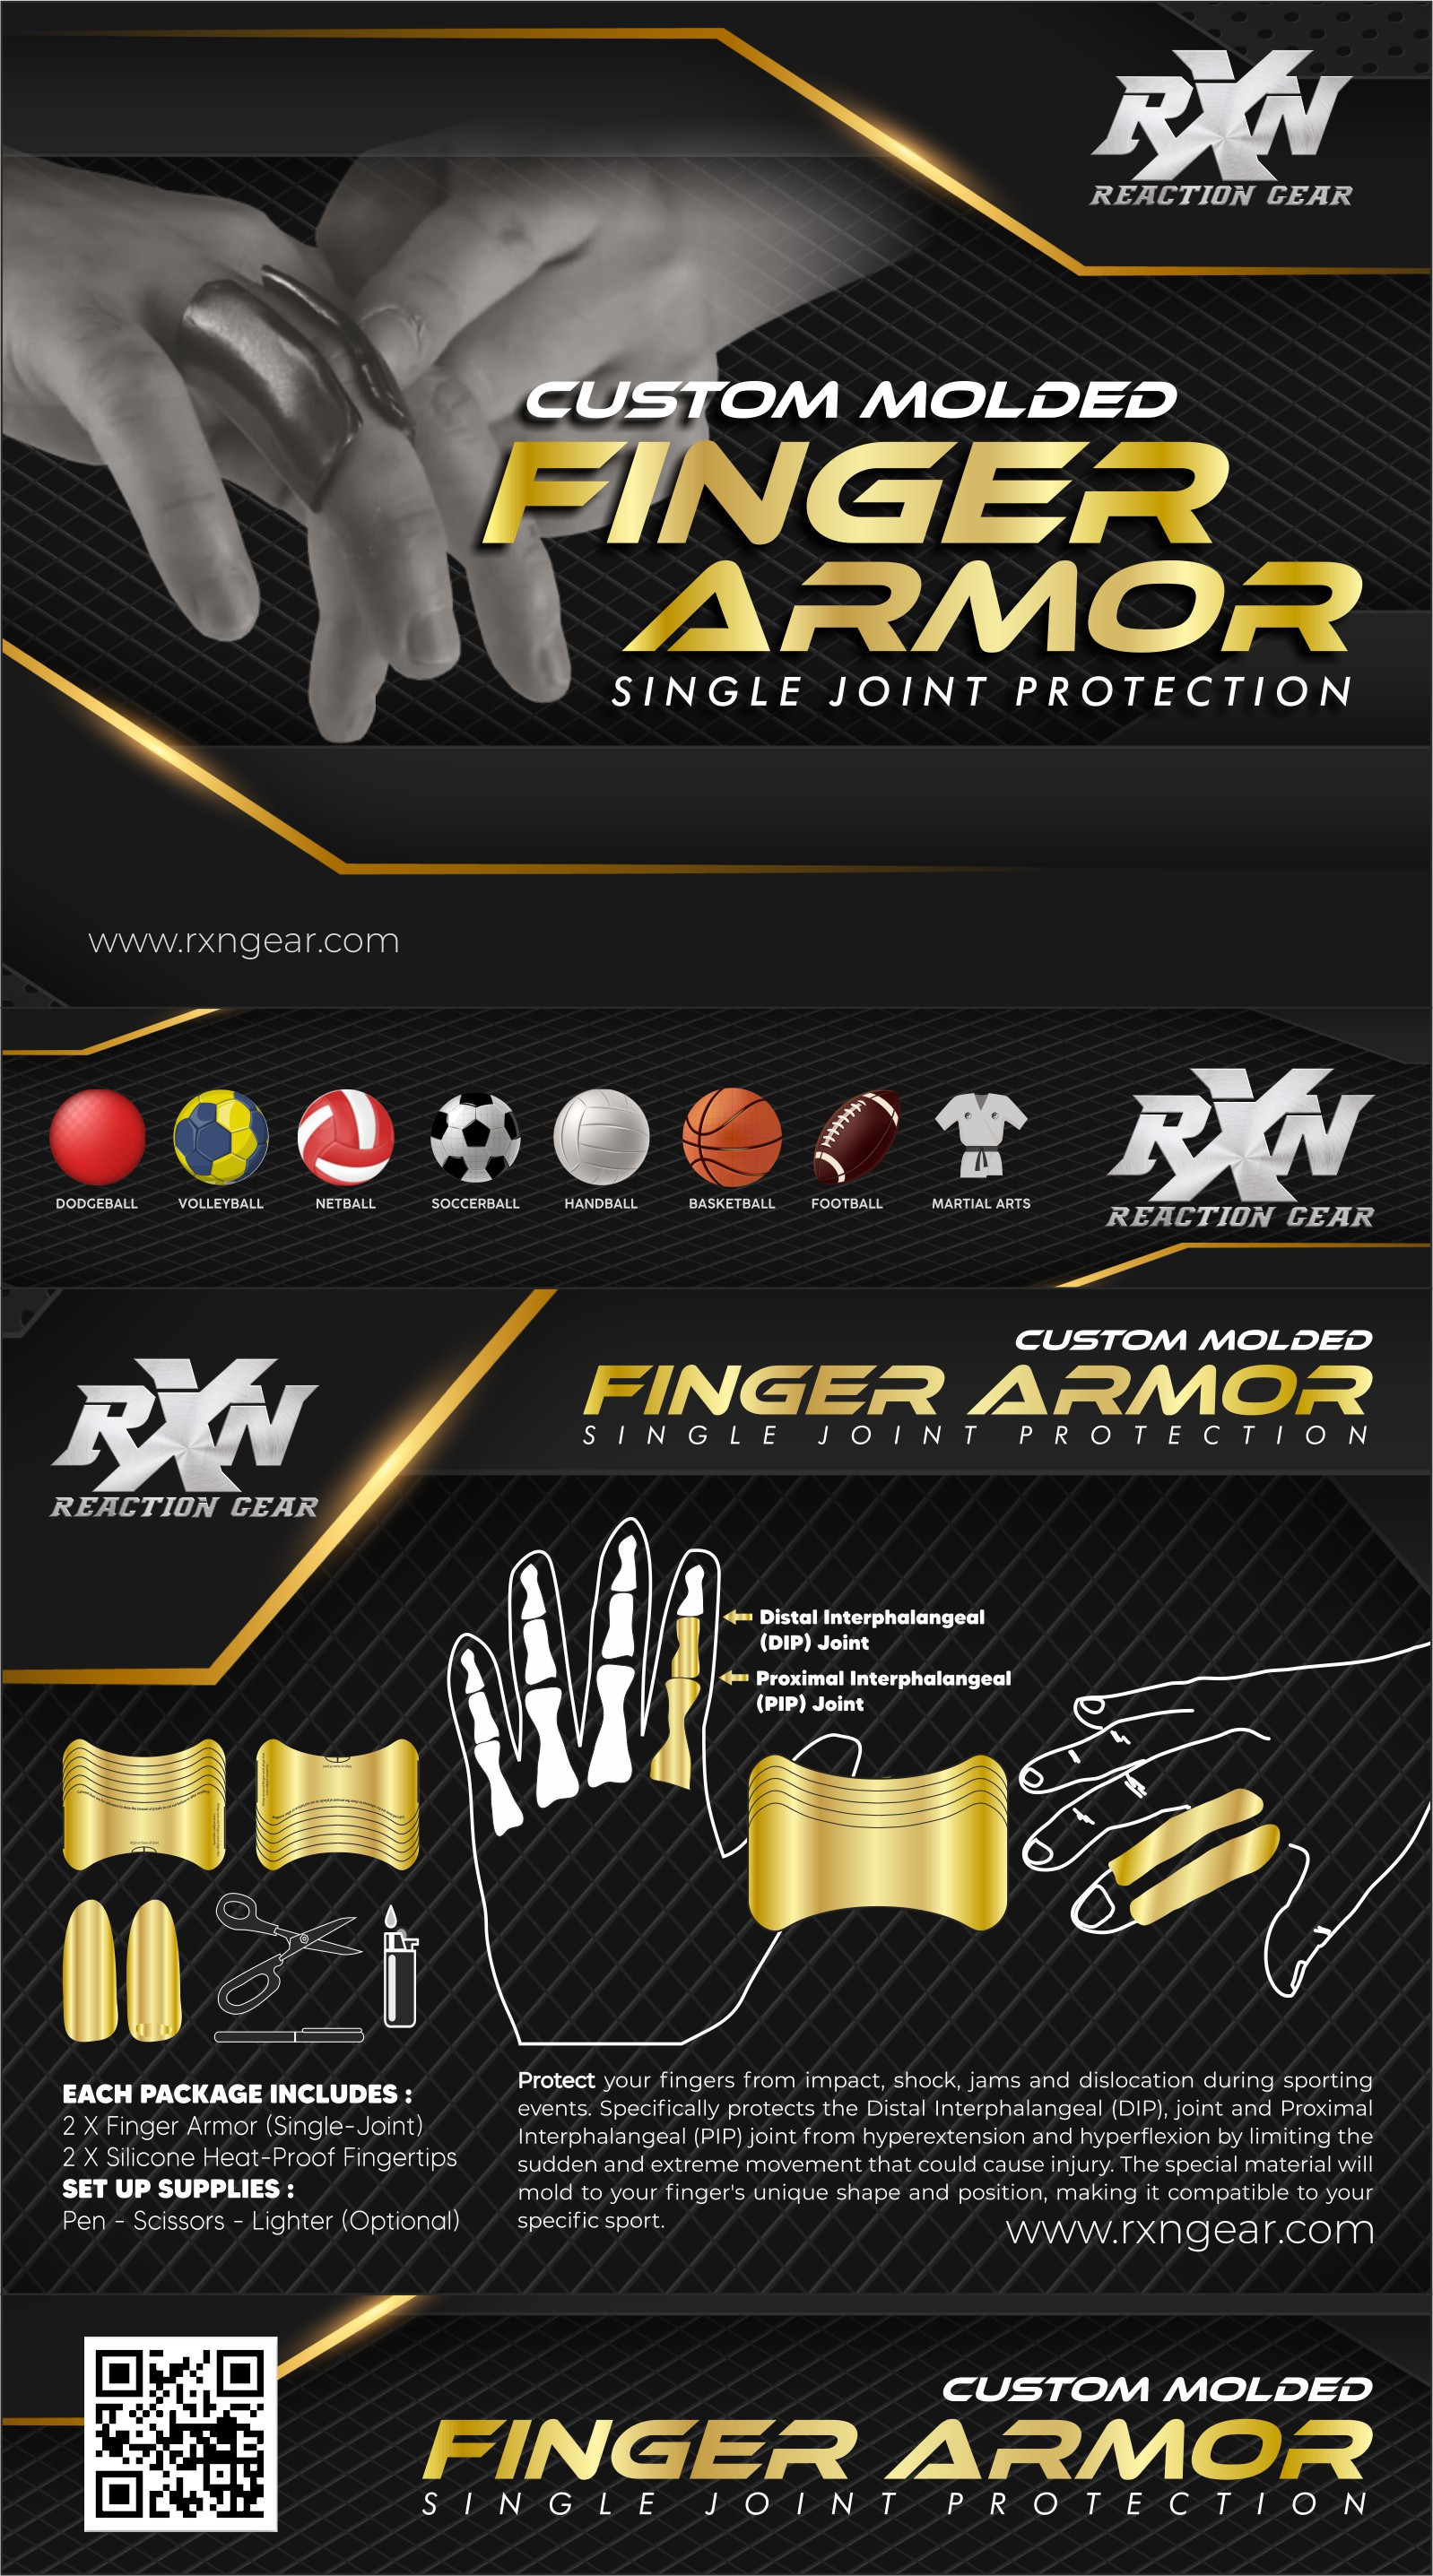 We need a package design for our new sports protective wear